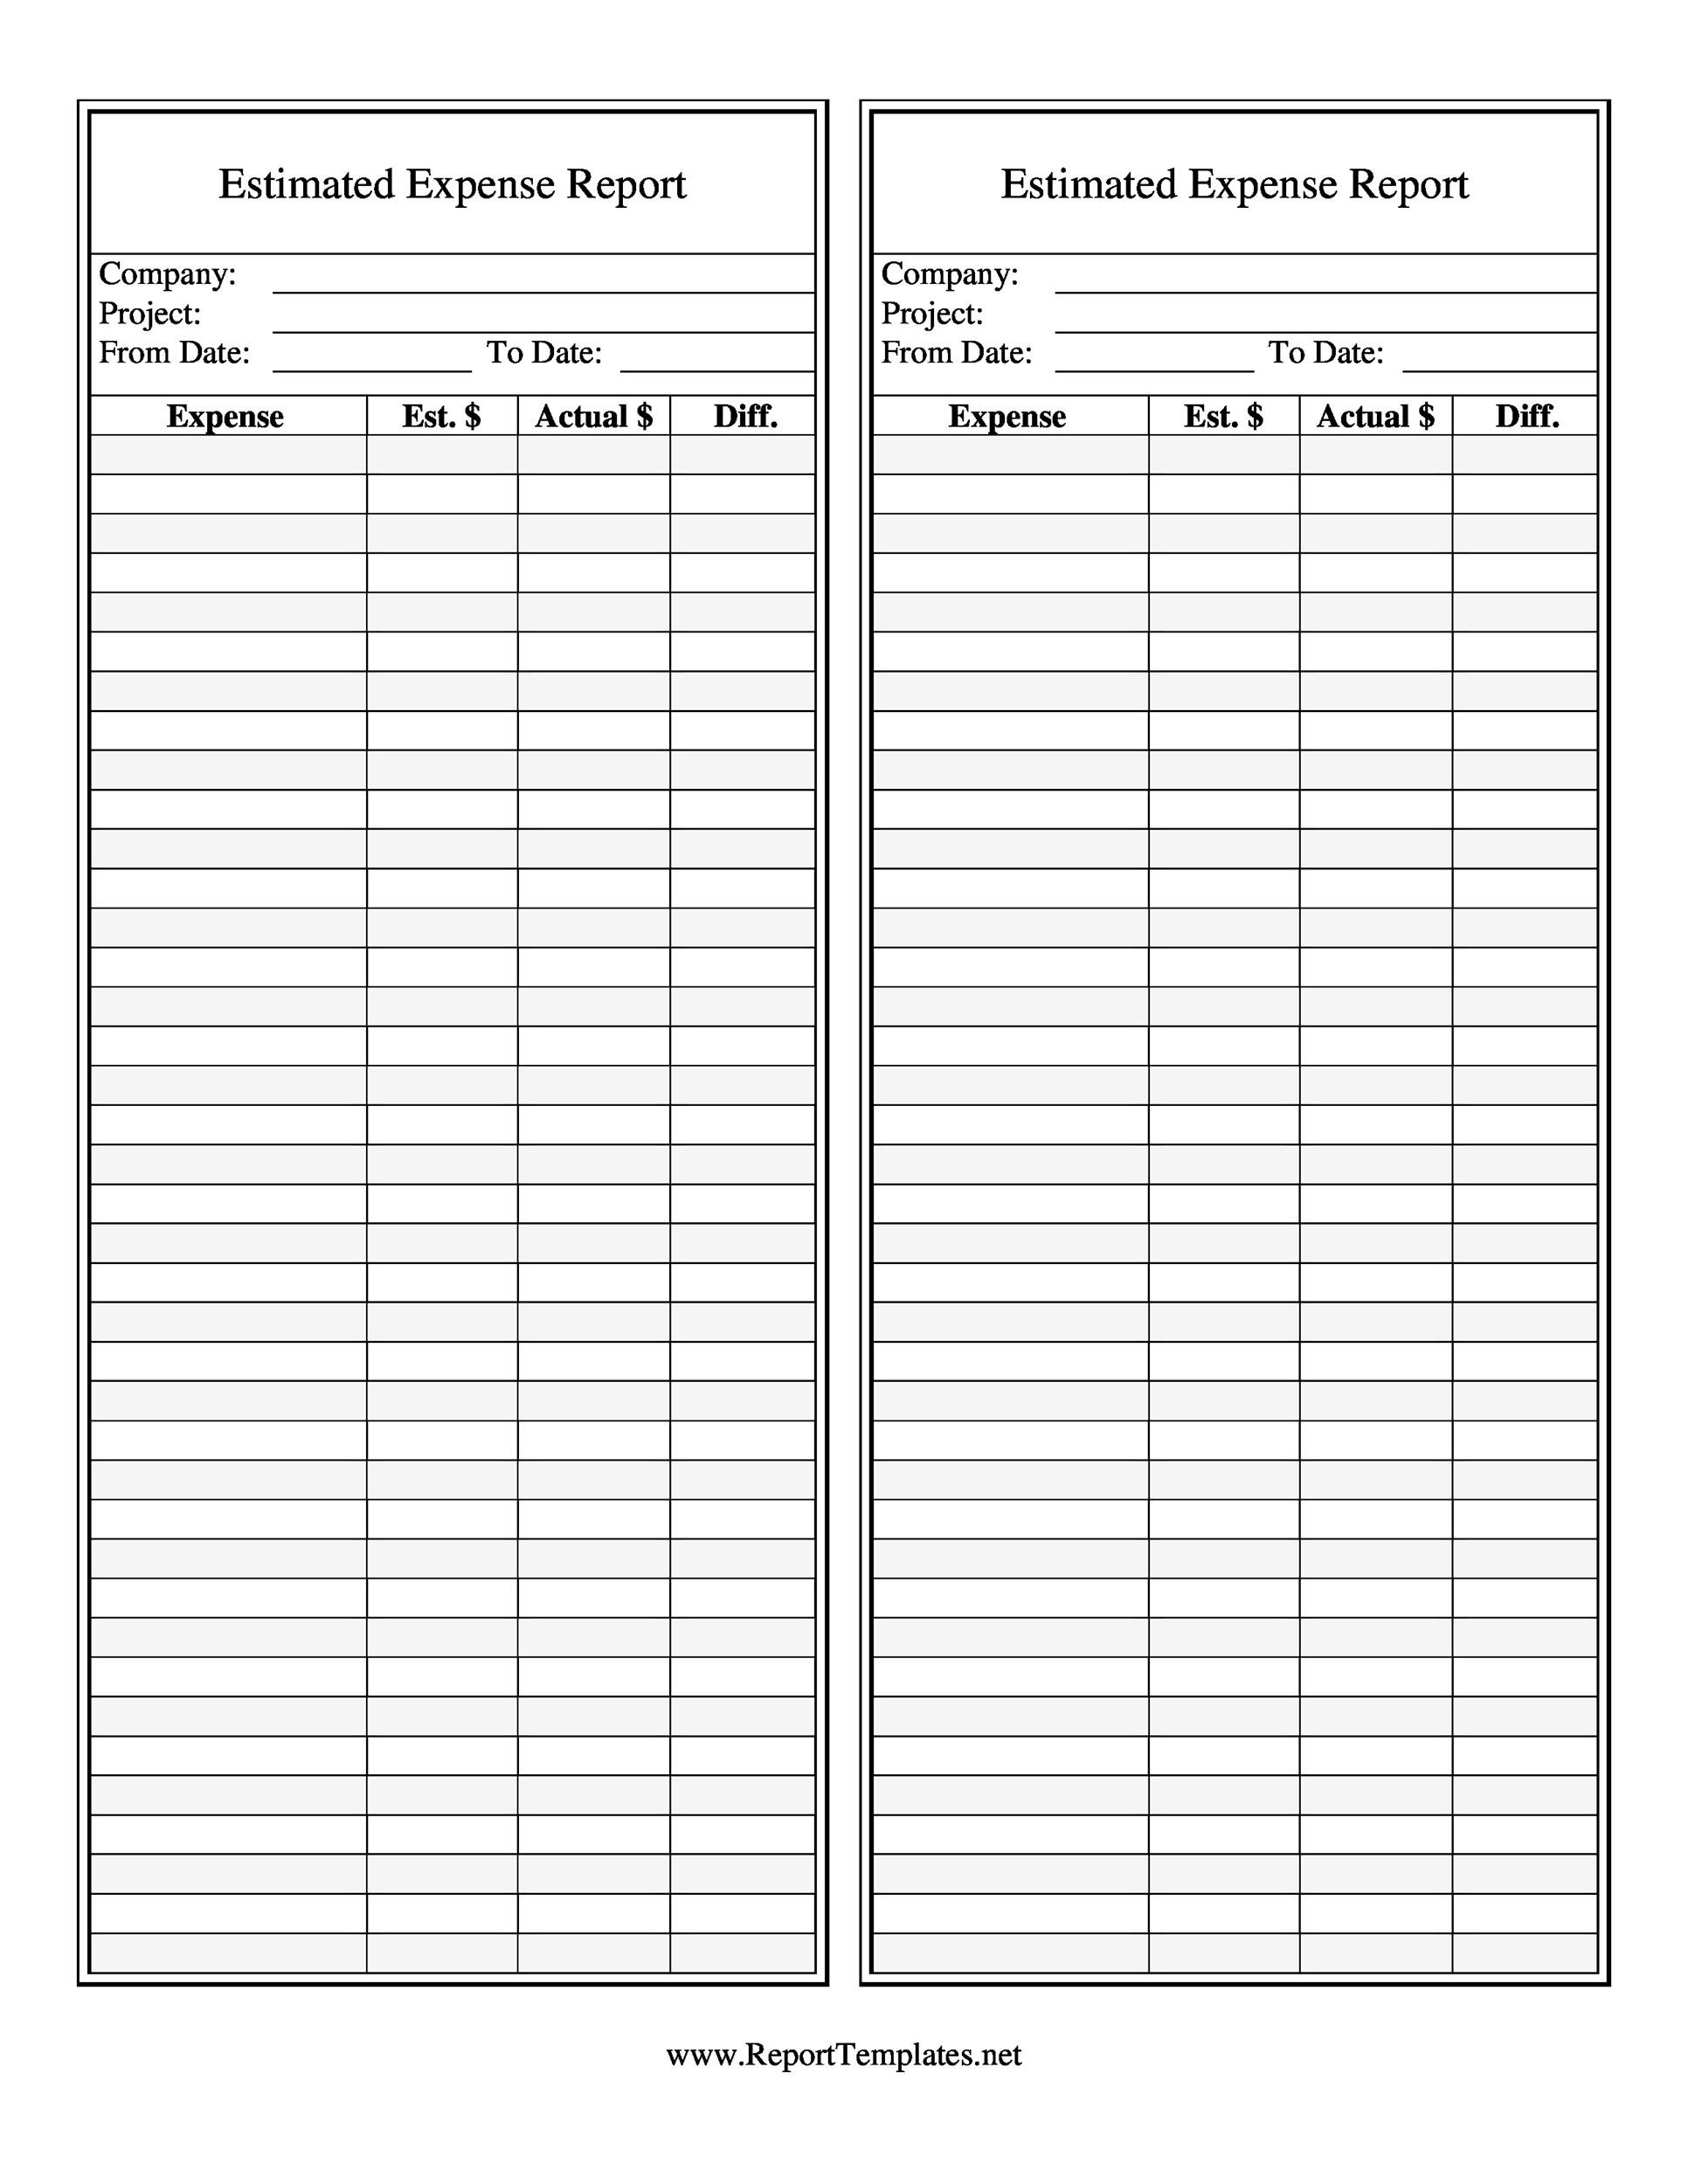 40 expense report templates to help you save money template lab printable expense report template 07 pronofoot35fo Image collections